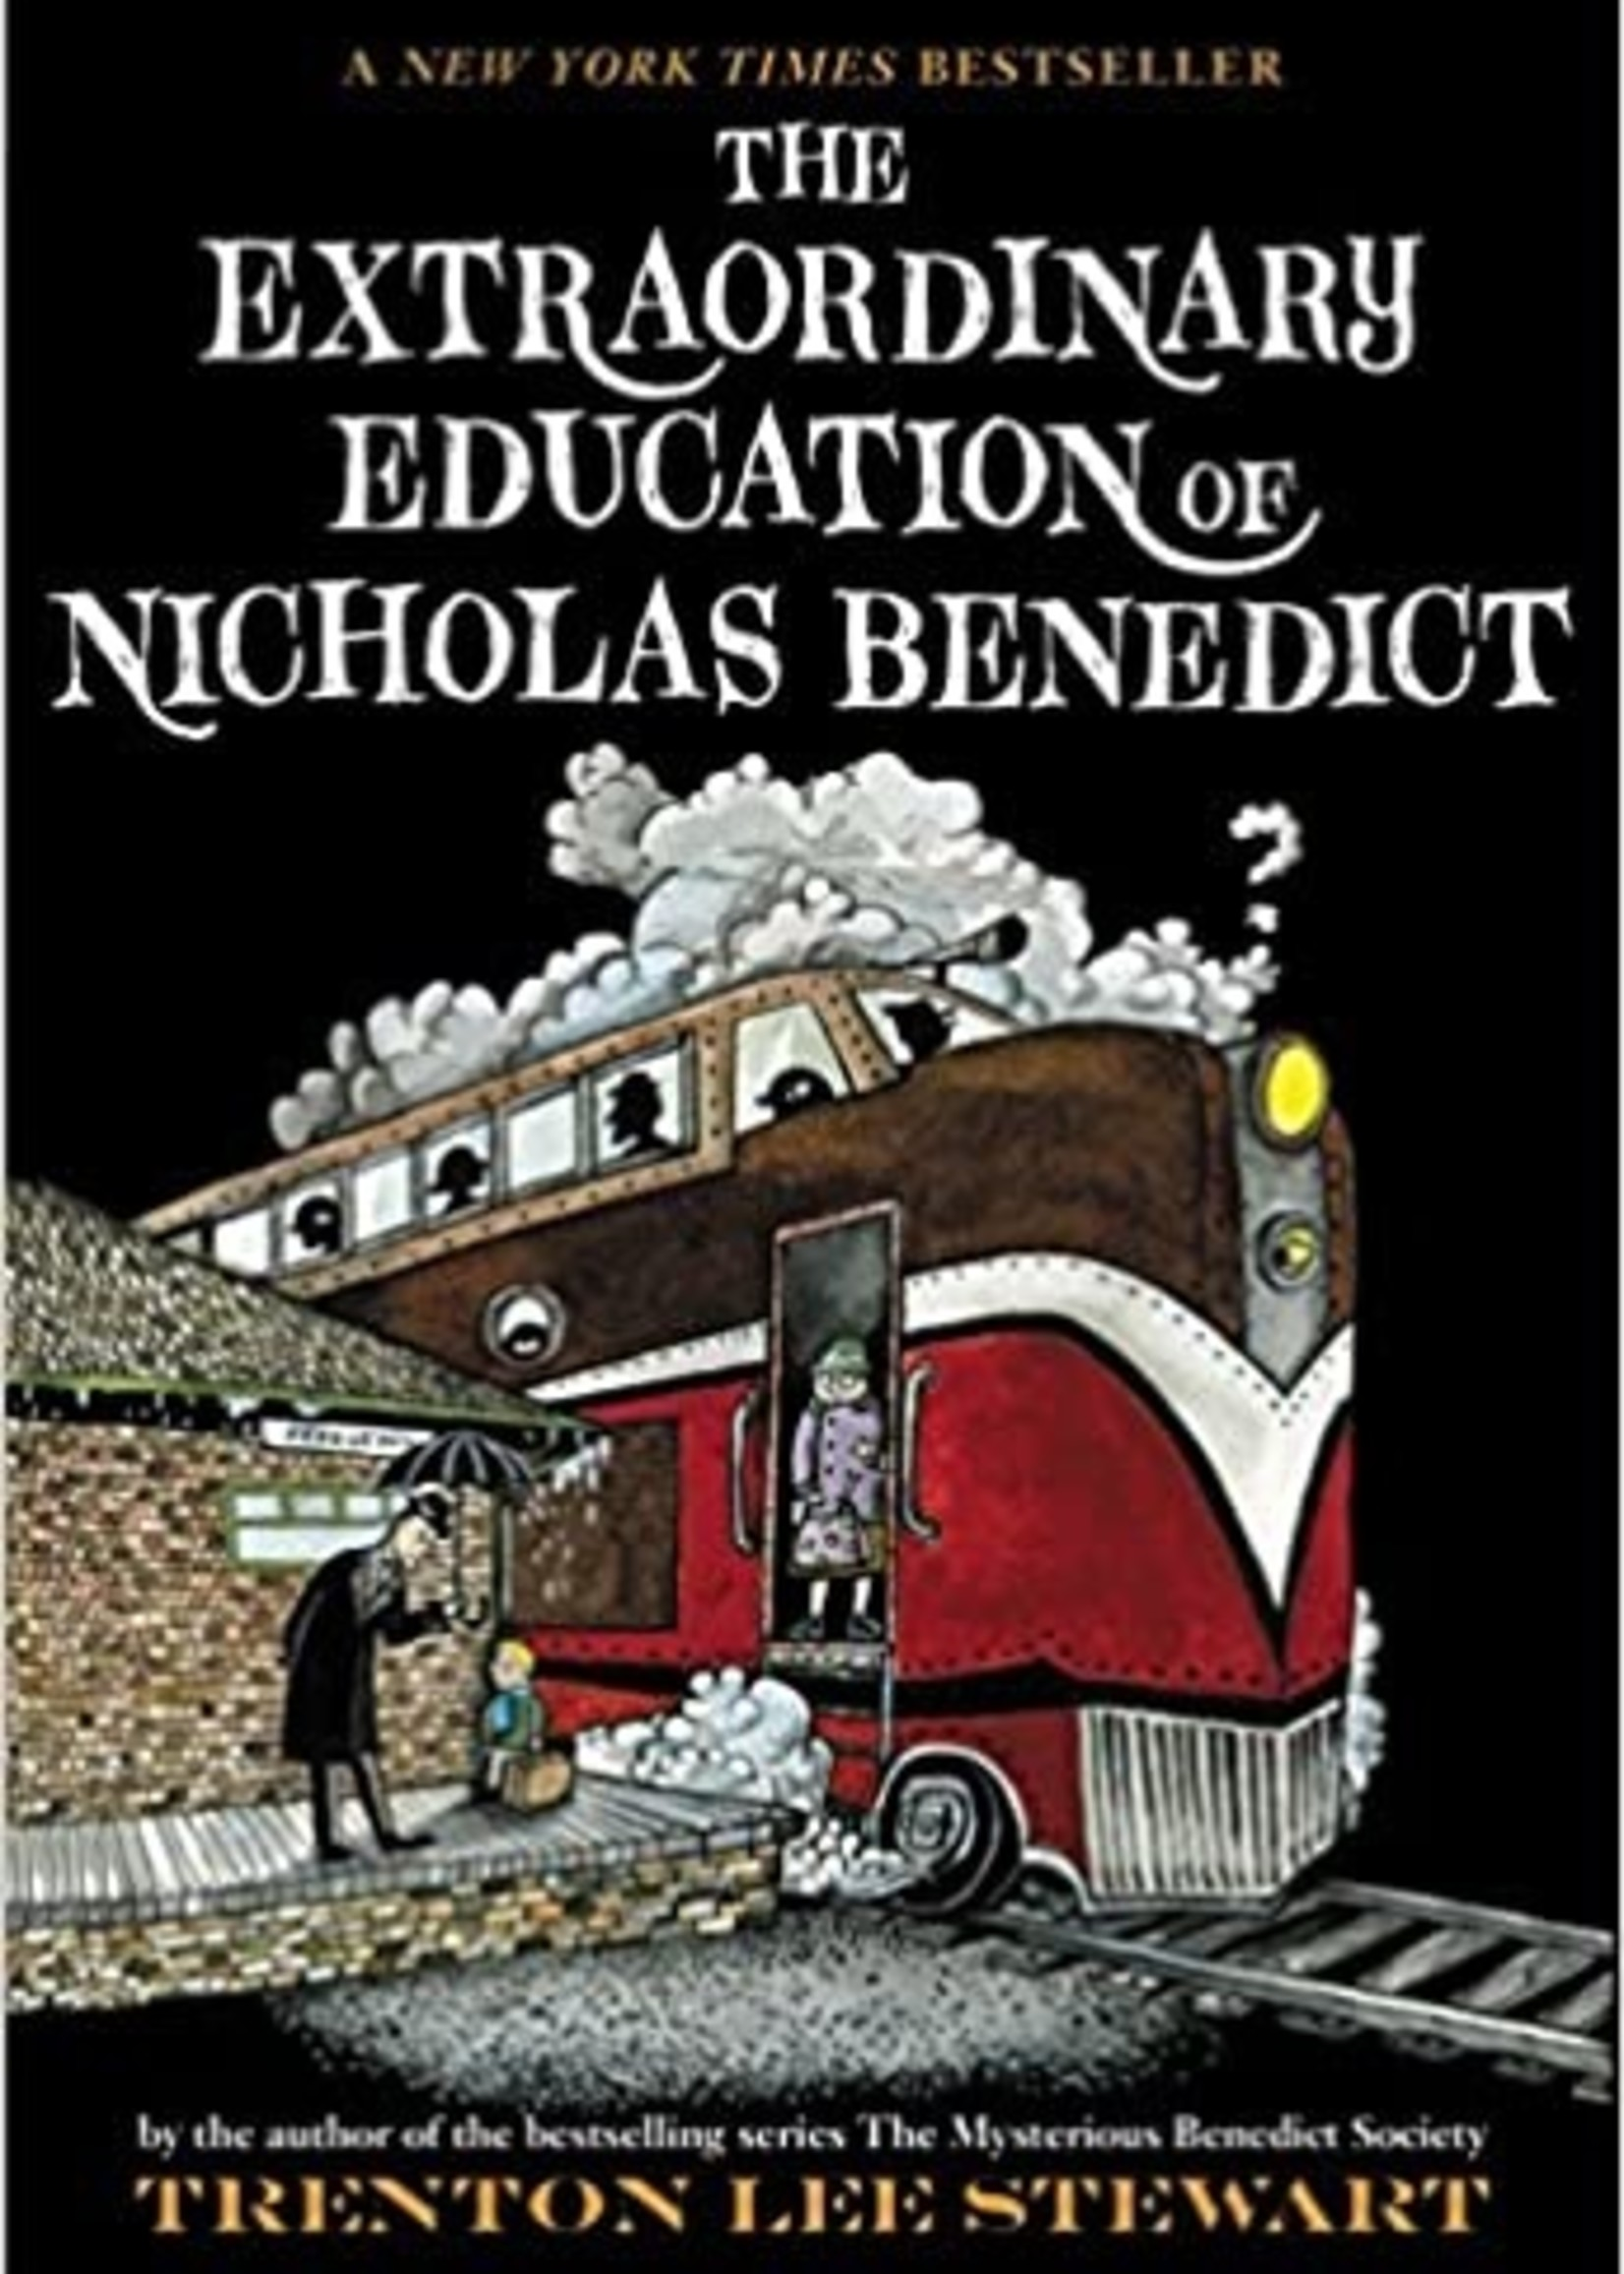 The Mysterious Benedict Society Prequel, The Extraordinary Education of Nicholas Benedict - Paperback